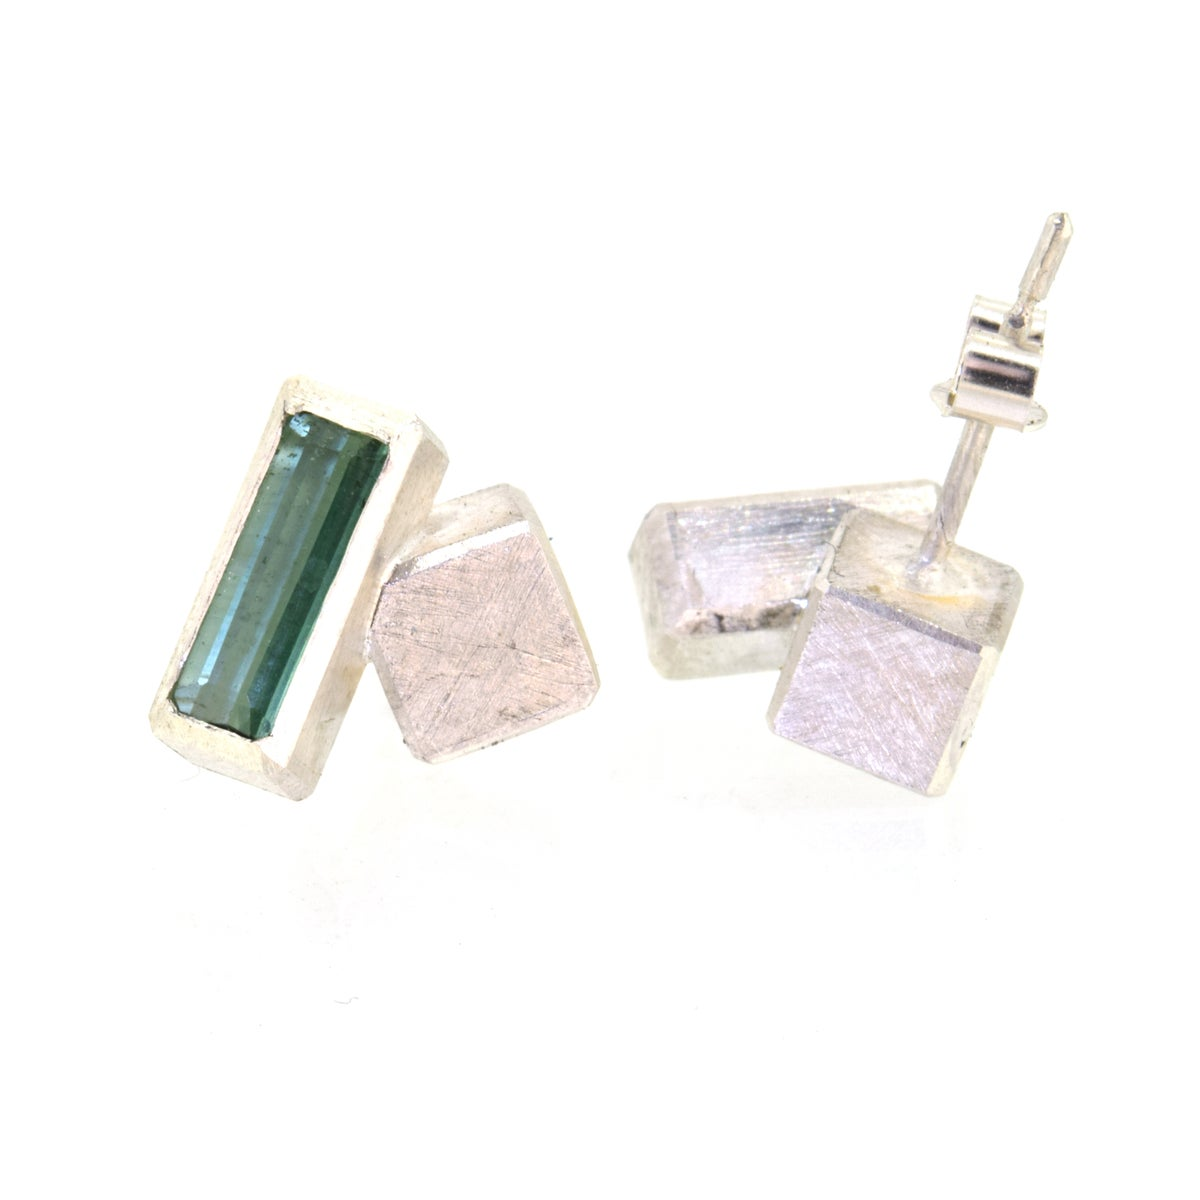 Green Tourmaline cube studs sterling silver. Chris Boland